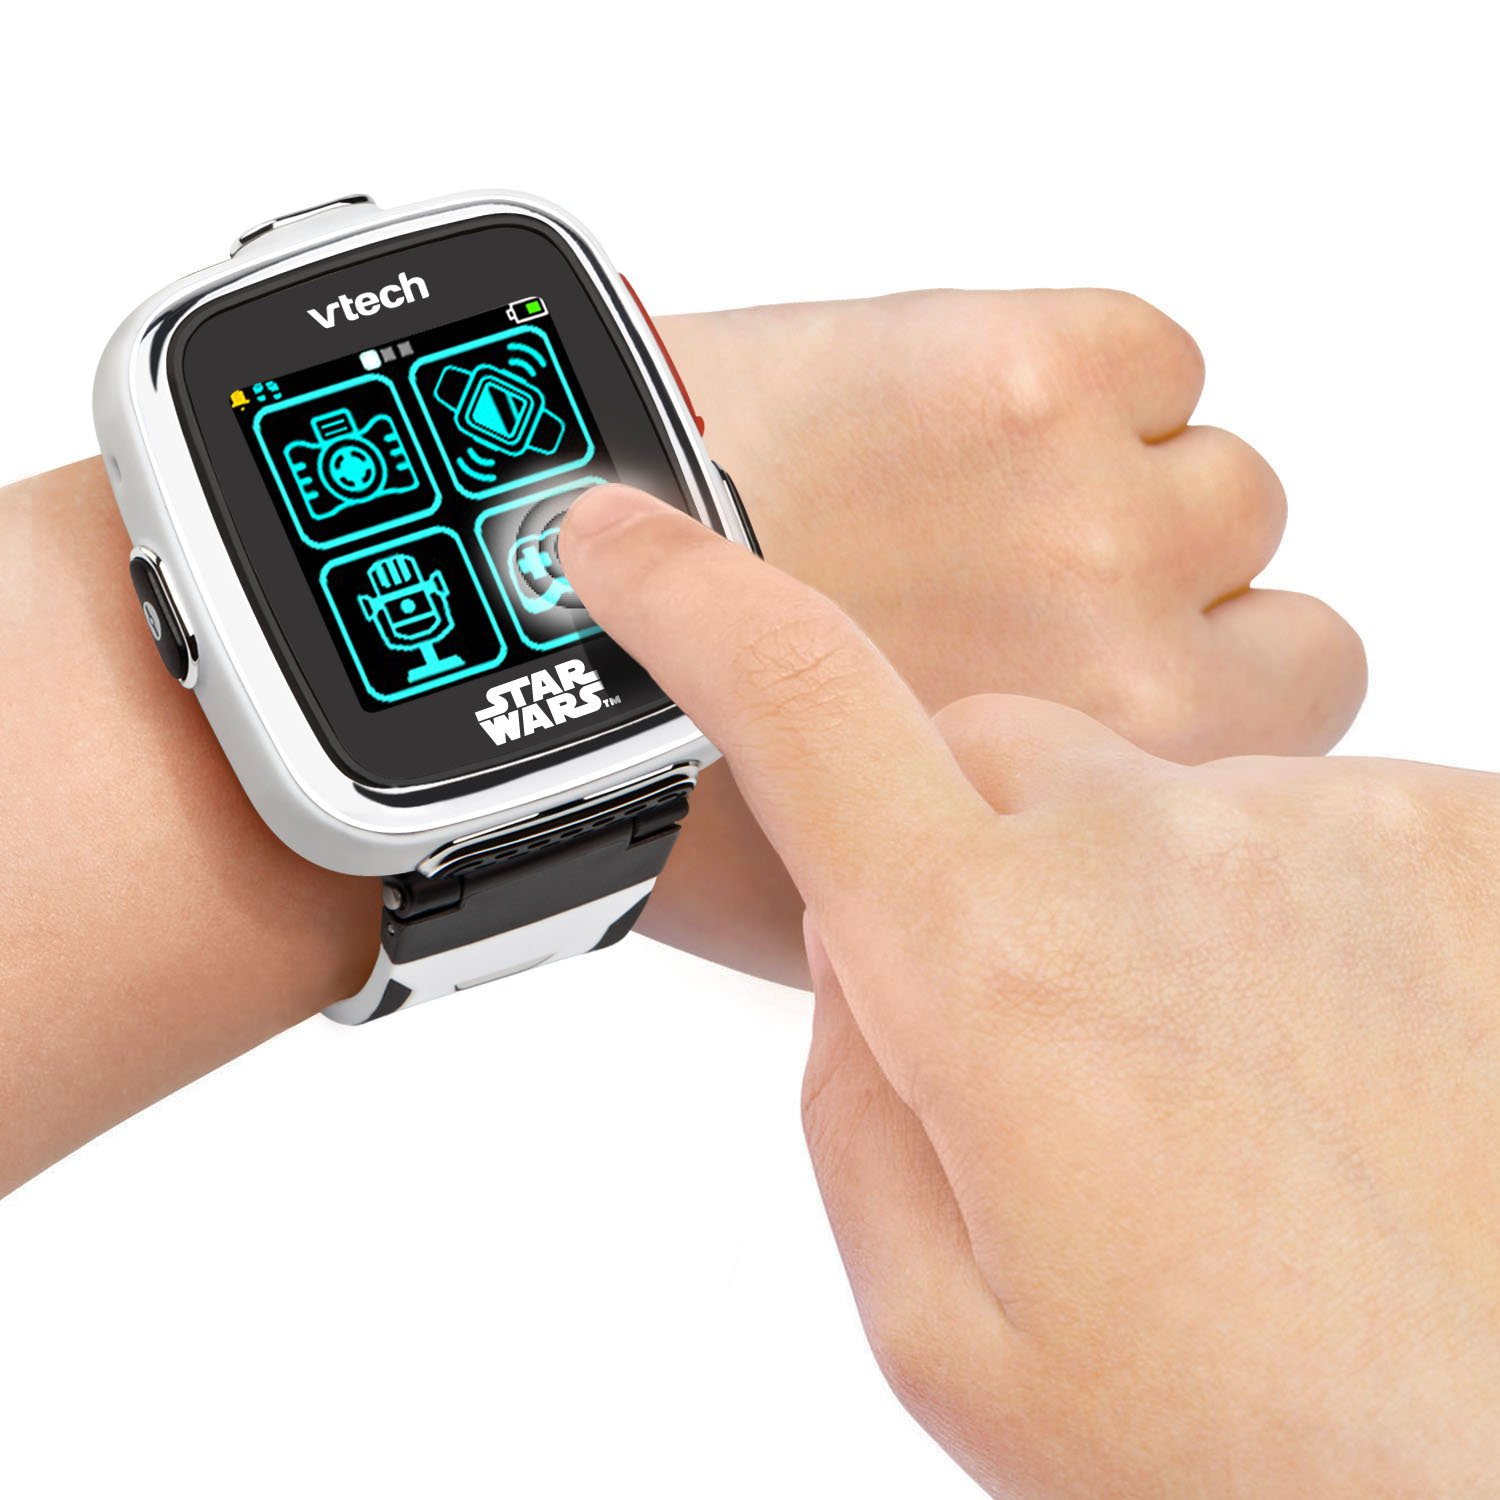 VTech Star Wars First Order Stormtrooper Smartwatch with Camera Amazon Exclusive, White by VTech (Image #5)